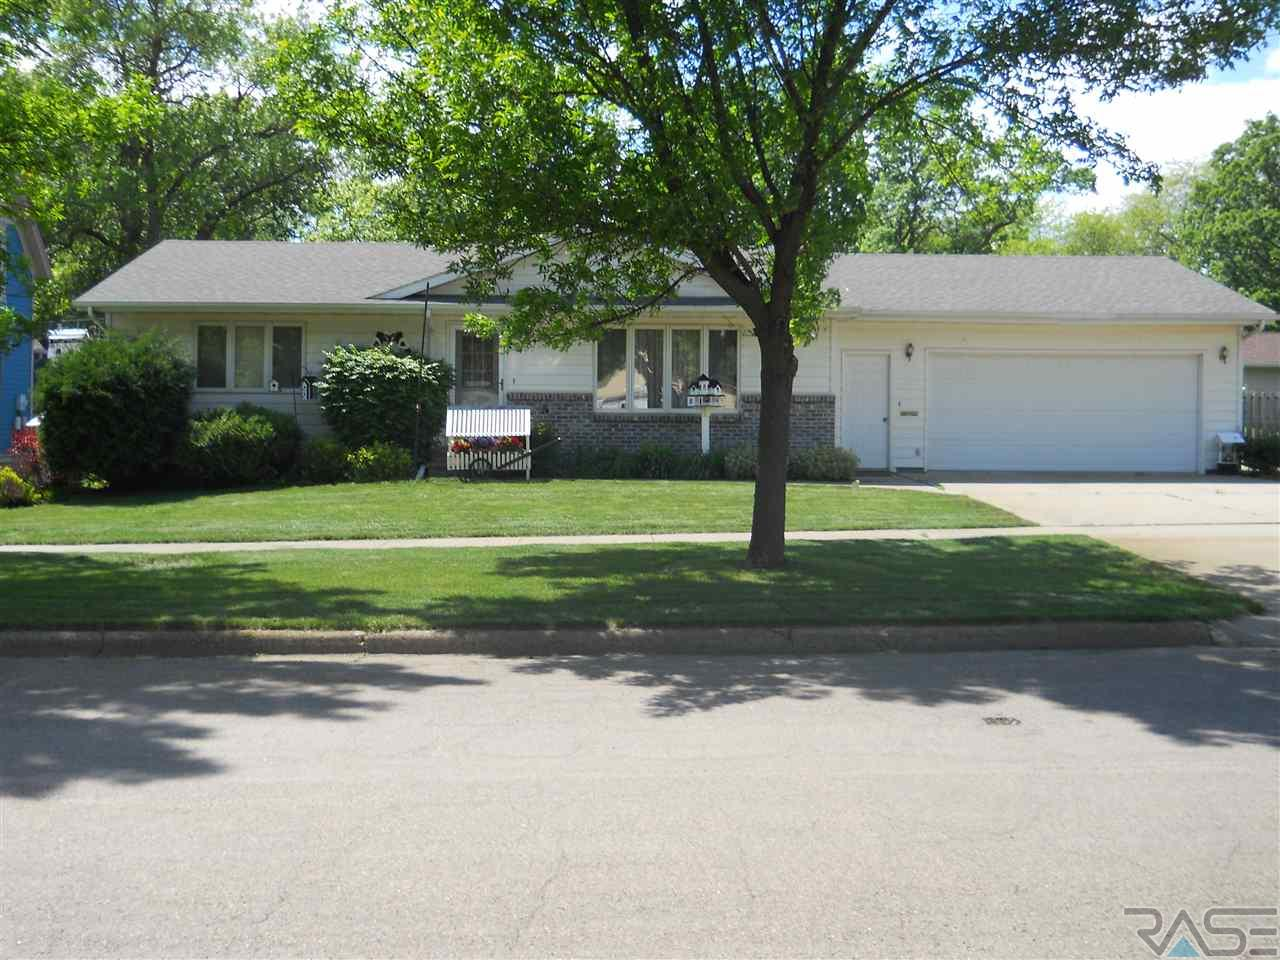 207 N Liberty Ave, Madison, SD 57042